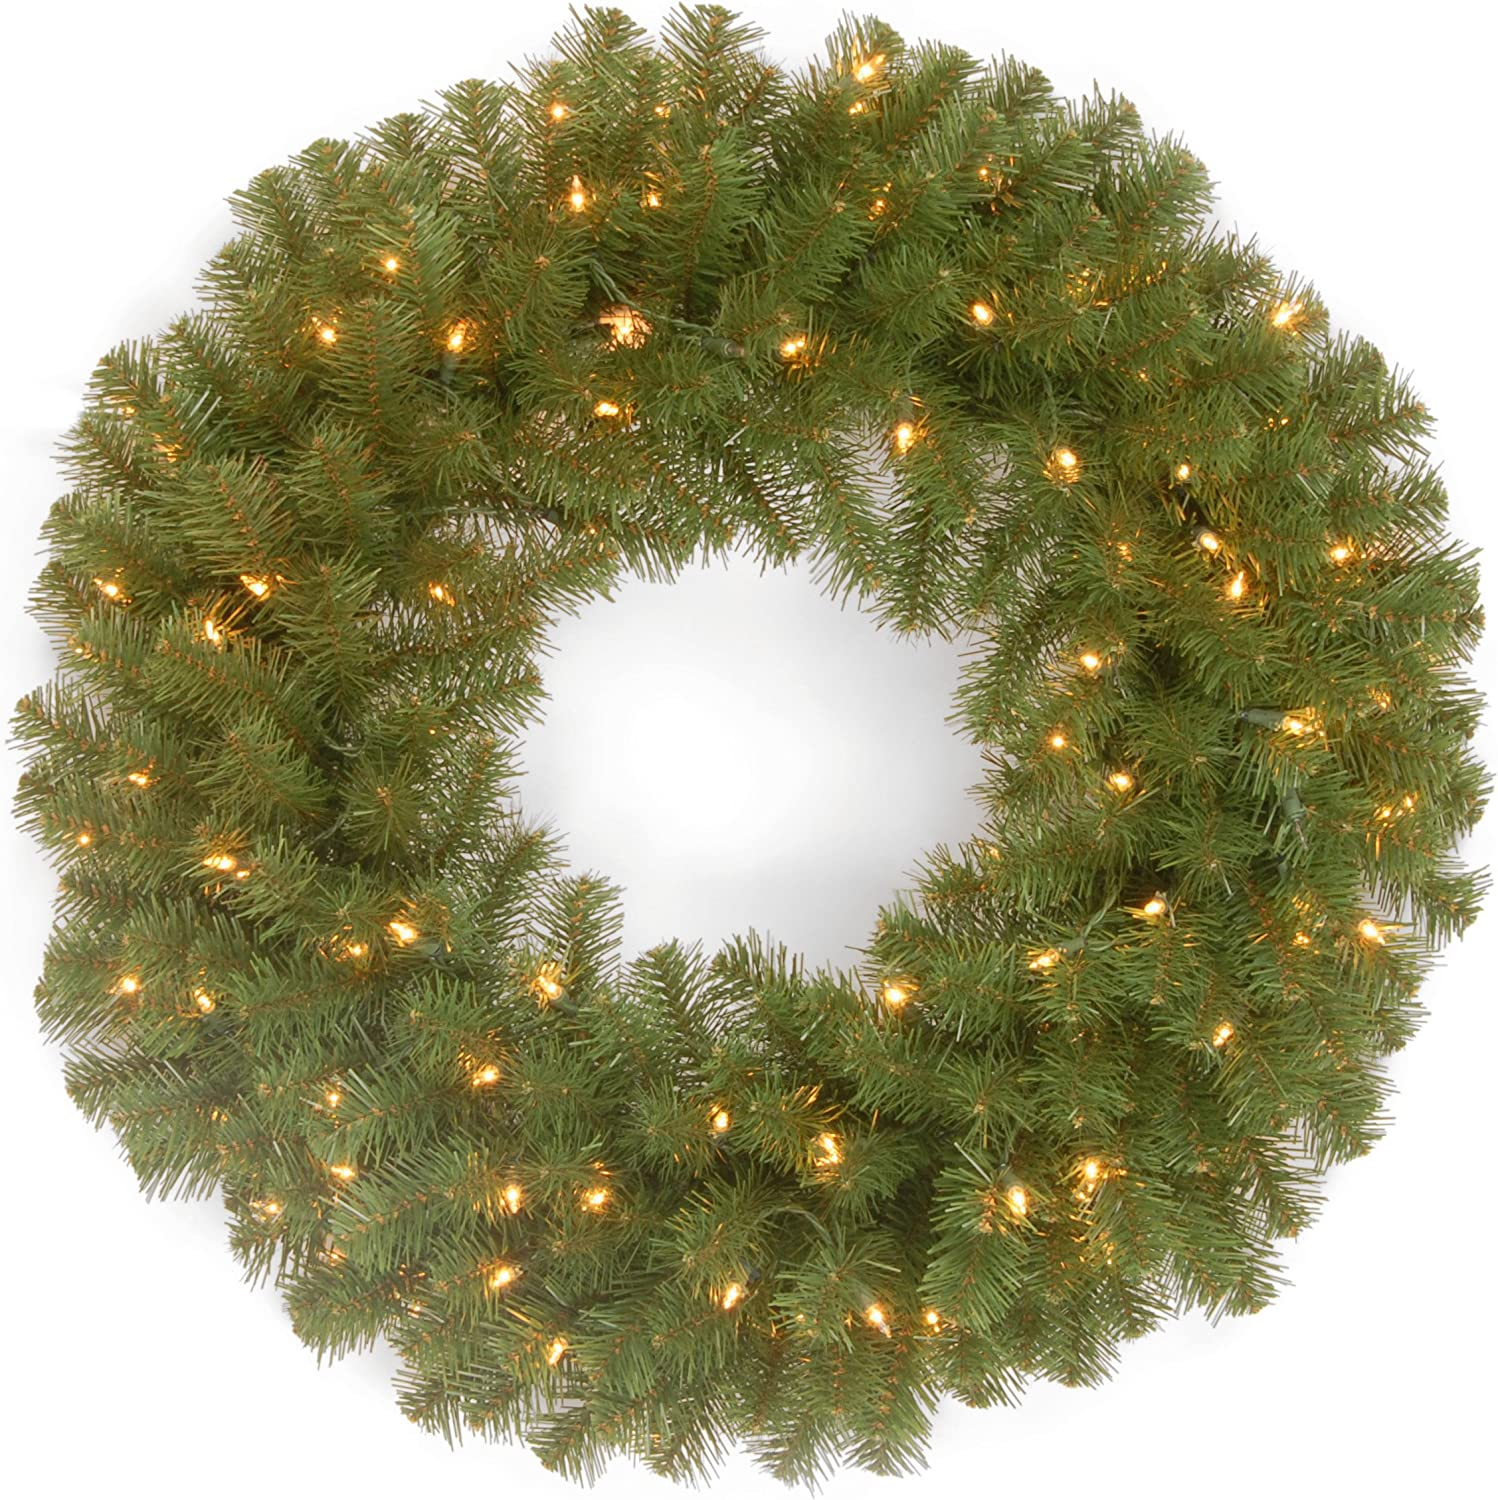 National Tree Company Pre Lit Artificial Christmas Wreath Includes Pre Strung White Lights North Valley Spruce 24 Inch Amazon Co Uk Kitchen Home